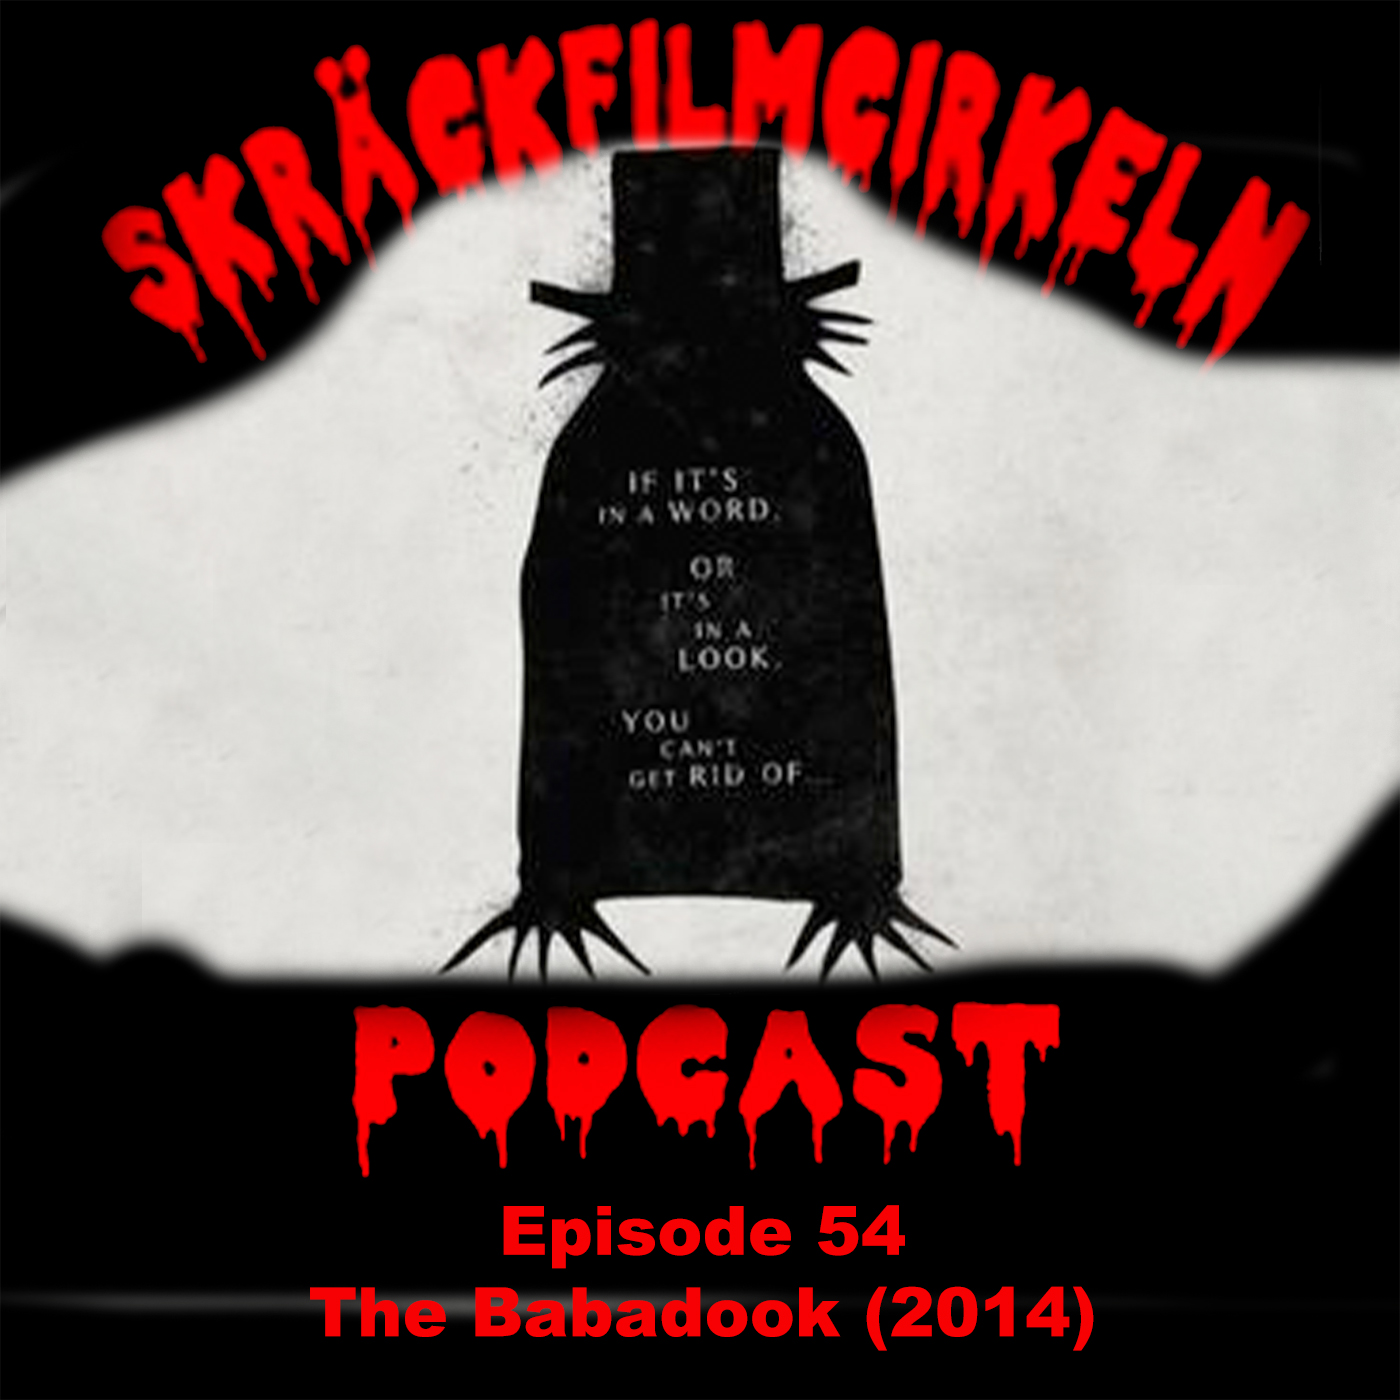 Episode 54 – Hysteri – The Babadook (2014)